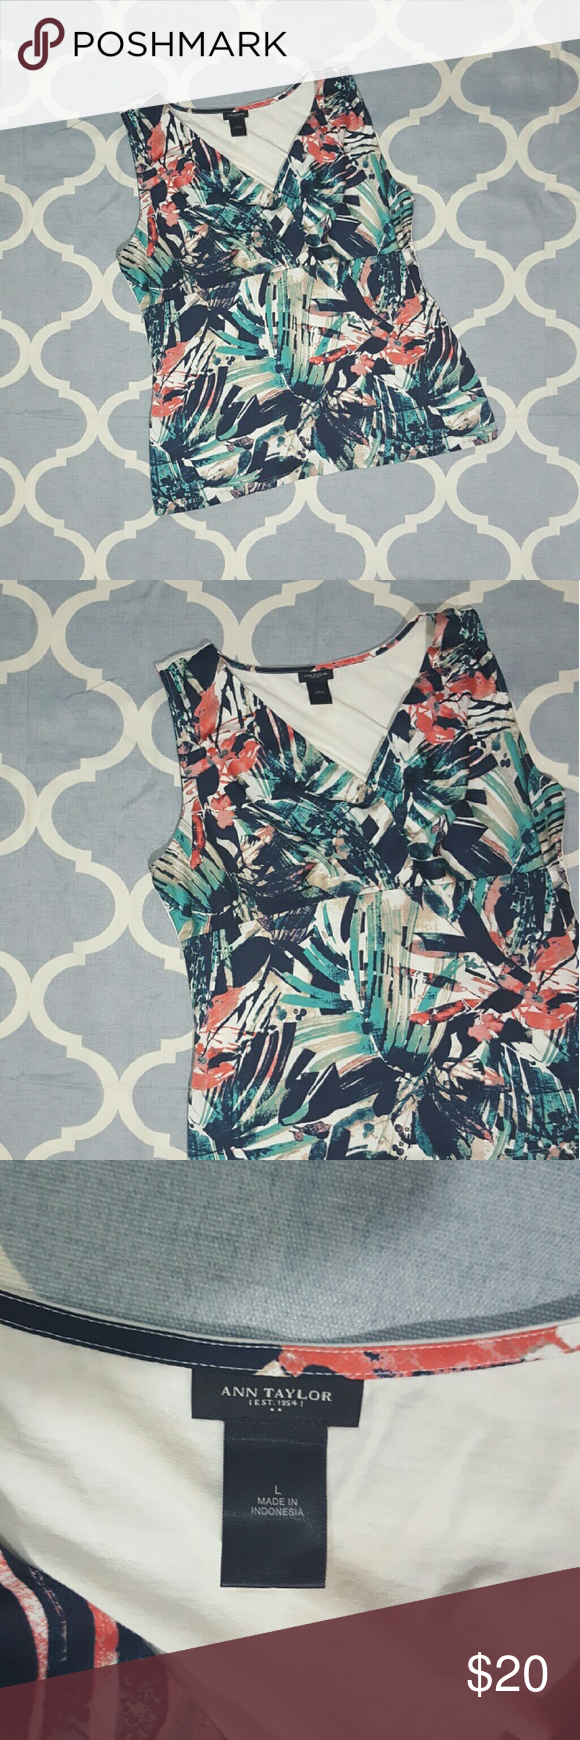 """Ann Taylor Blouse Sleeveless Sz large Green Red Ann Taylor women's blouse. Size Large. Sleeveless. Abstract green/black/red print. Polyester. In good used condition. B912&e. Length: 25""""  Chest: 20"""" Ann Taylor Tops Blouses"""